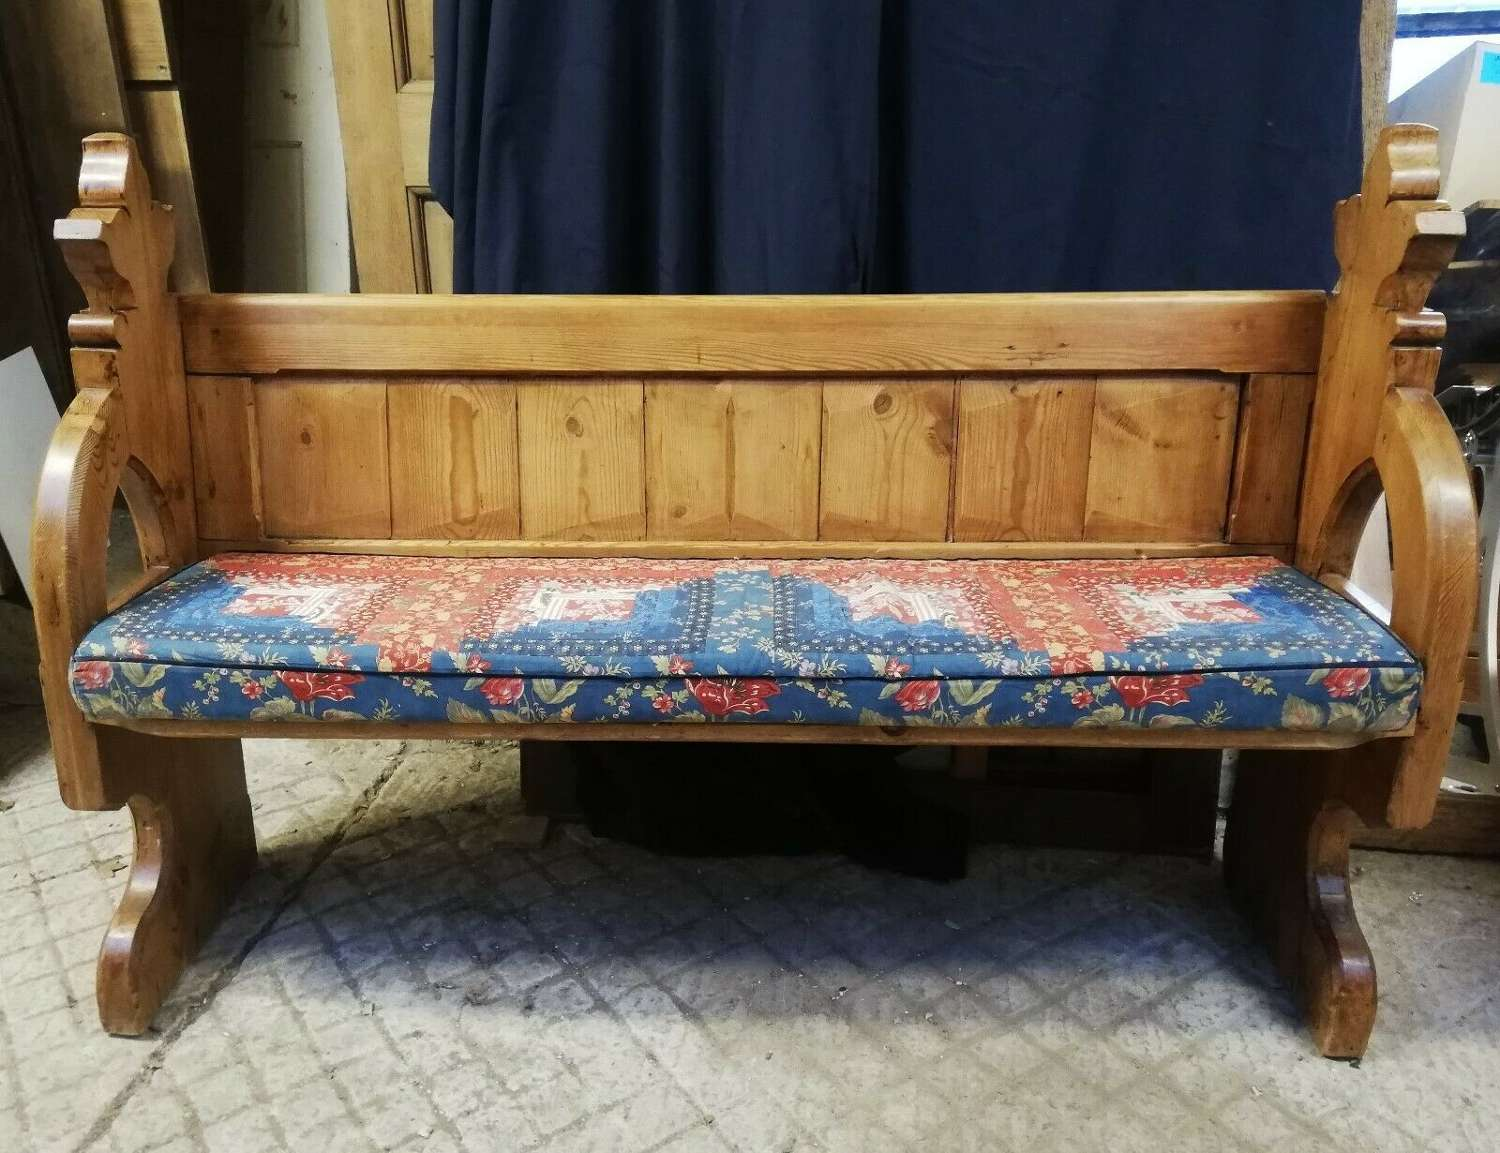 M1318 AN ATTRACTIVE RECLAIMED PINE CHURCH PEW WITH CUSHION